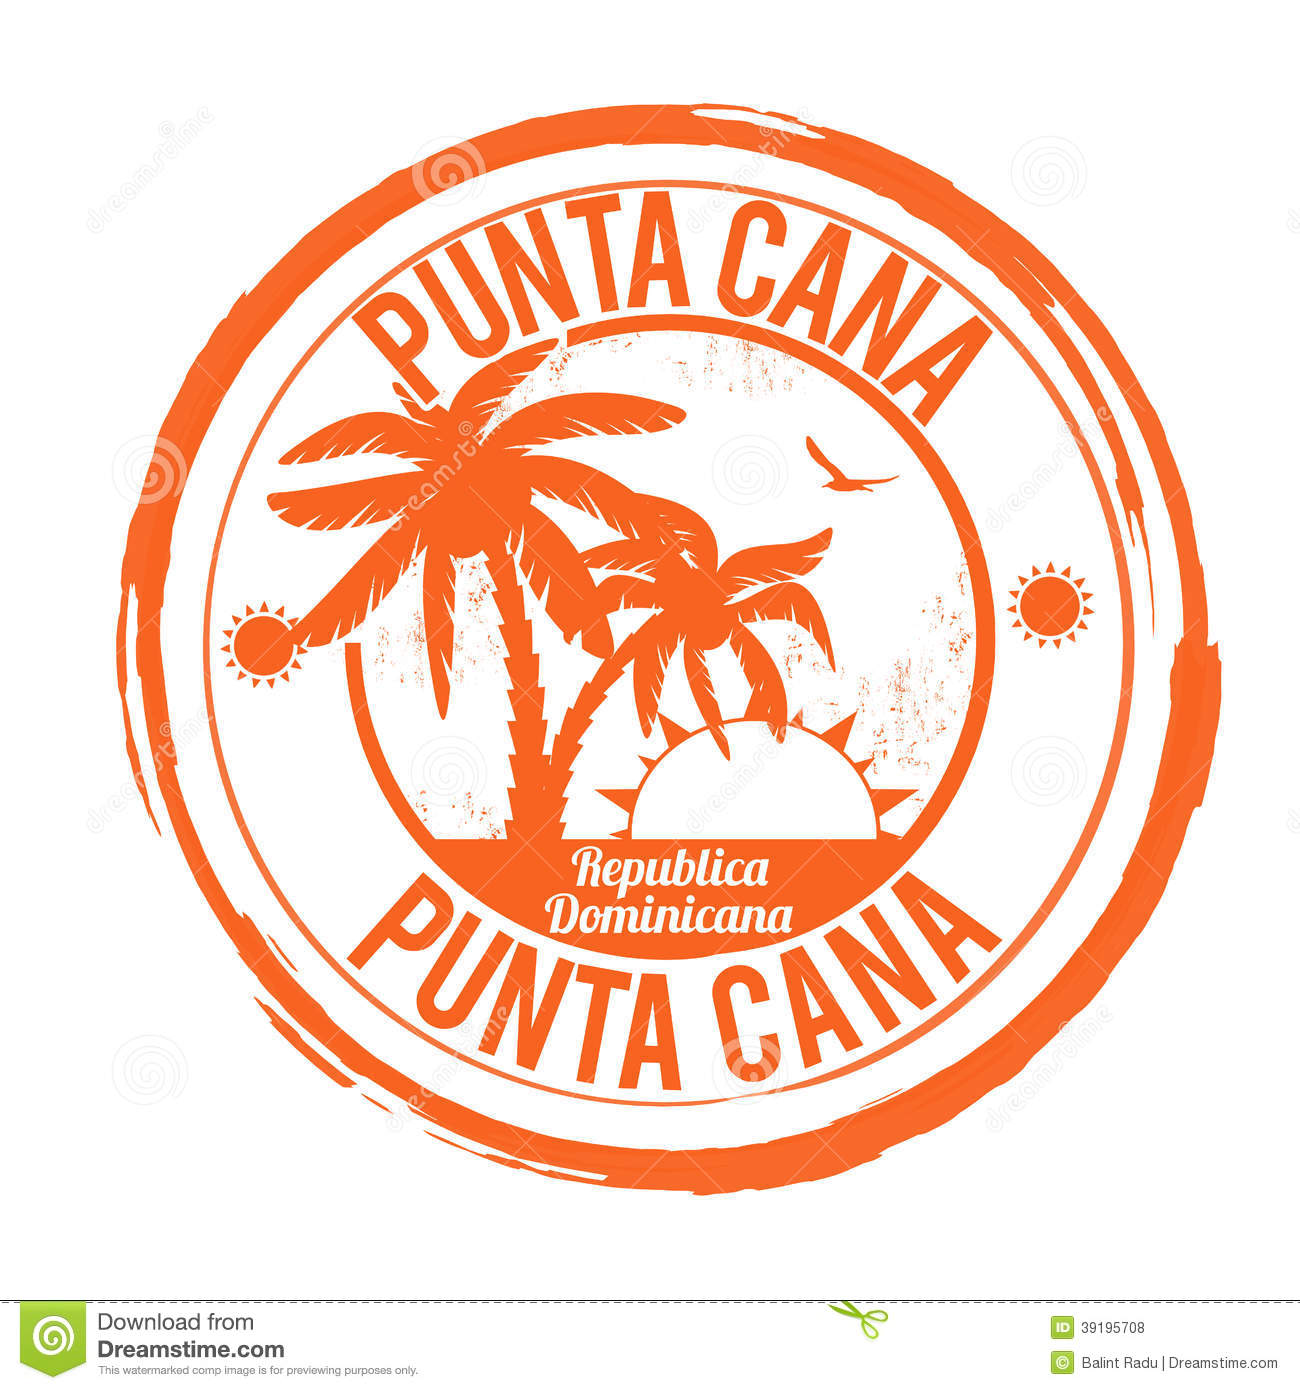 Punta Cana grunge rubber stamp on white, vector illustration.